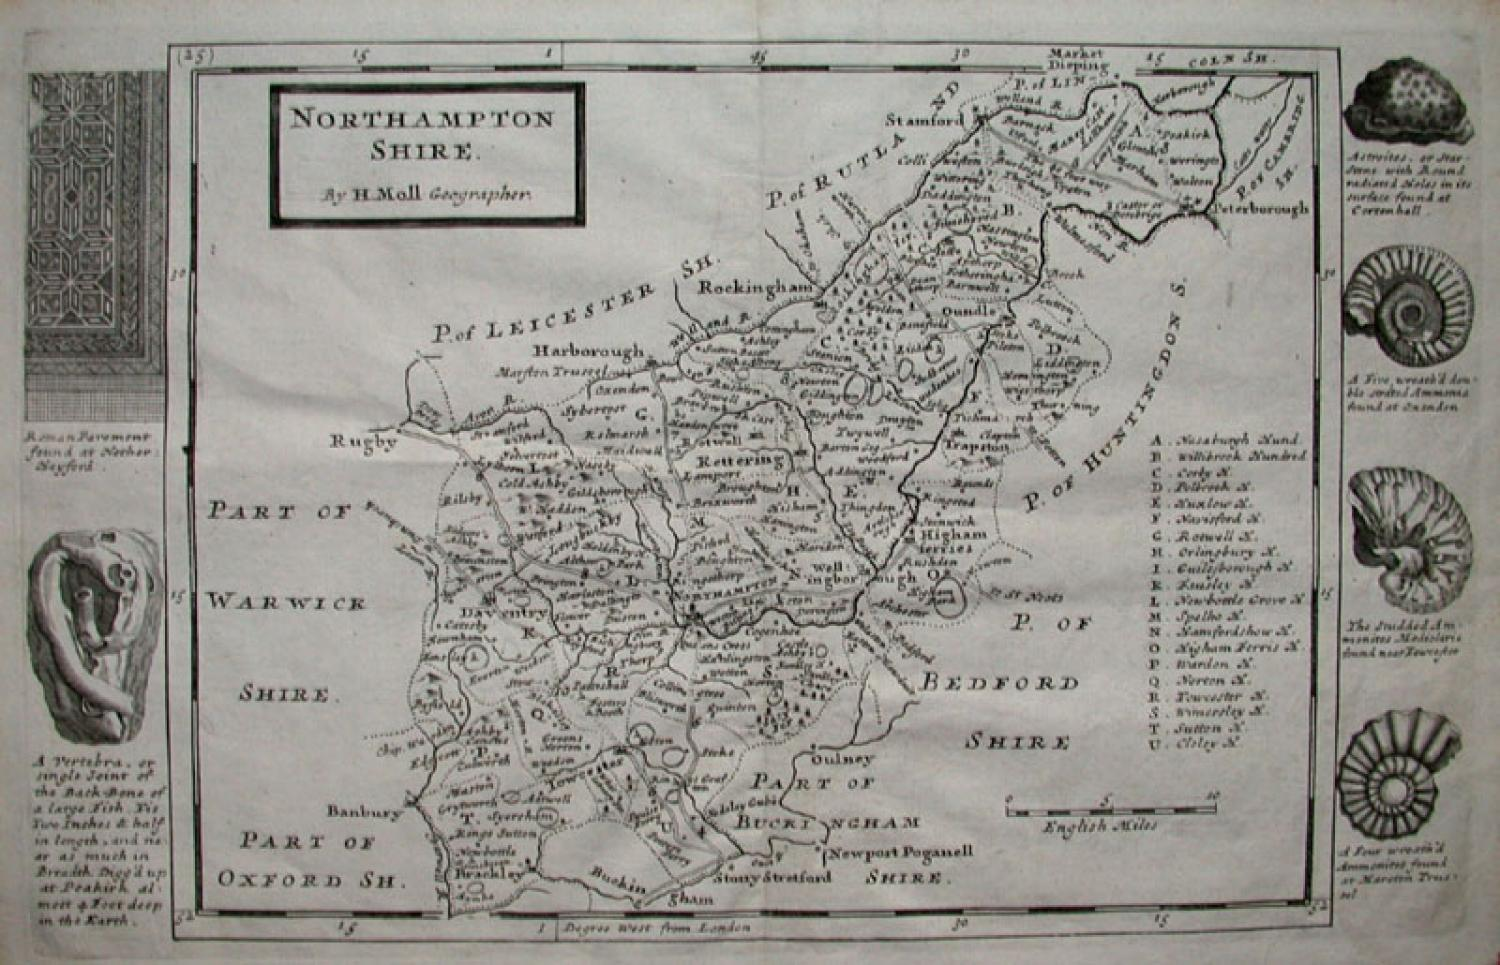 NORTHAMPTONSHIRE by H MOLL Geographer